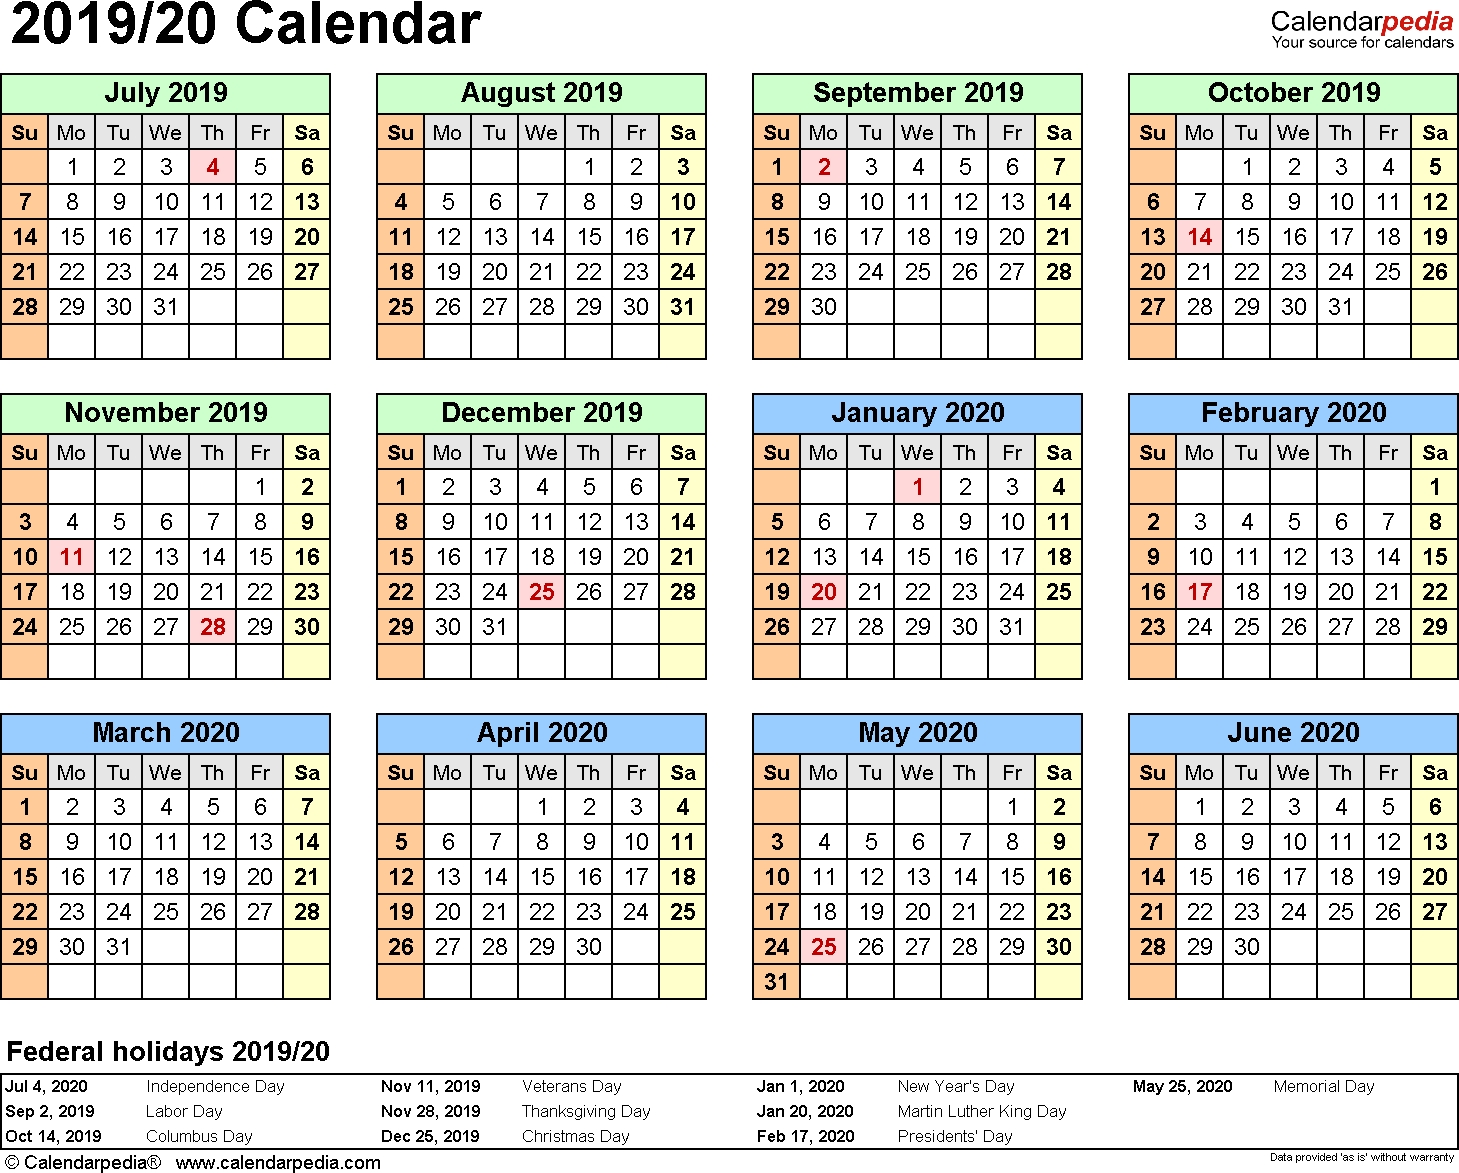 Split Year Calendar 2019/20 (July To June) - Word Templates pertaining to 1 Page Calendar 2019-2020 With Major Holidays